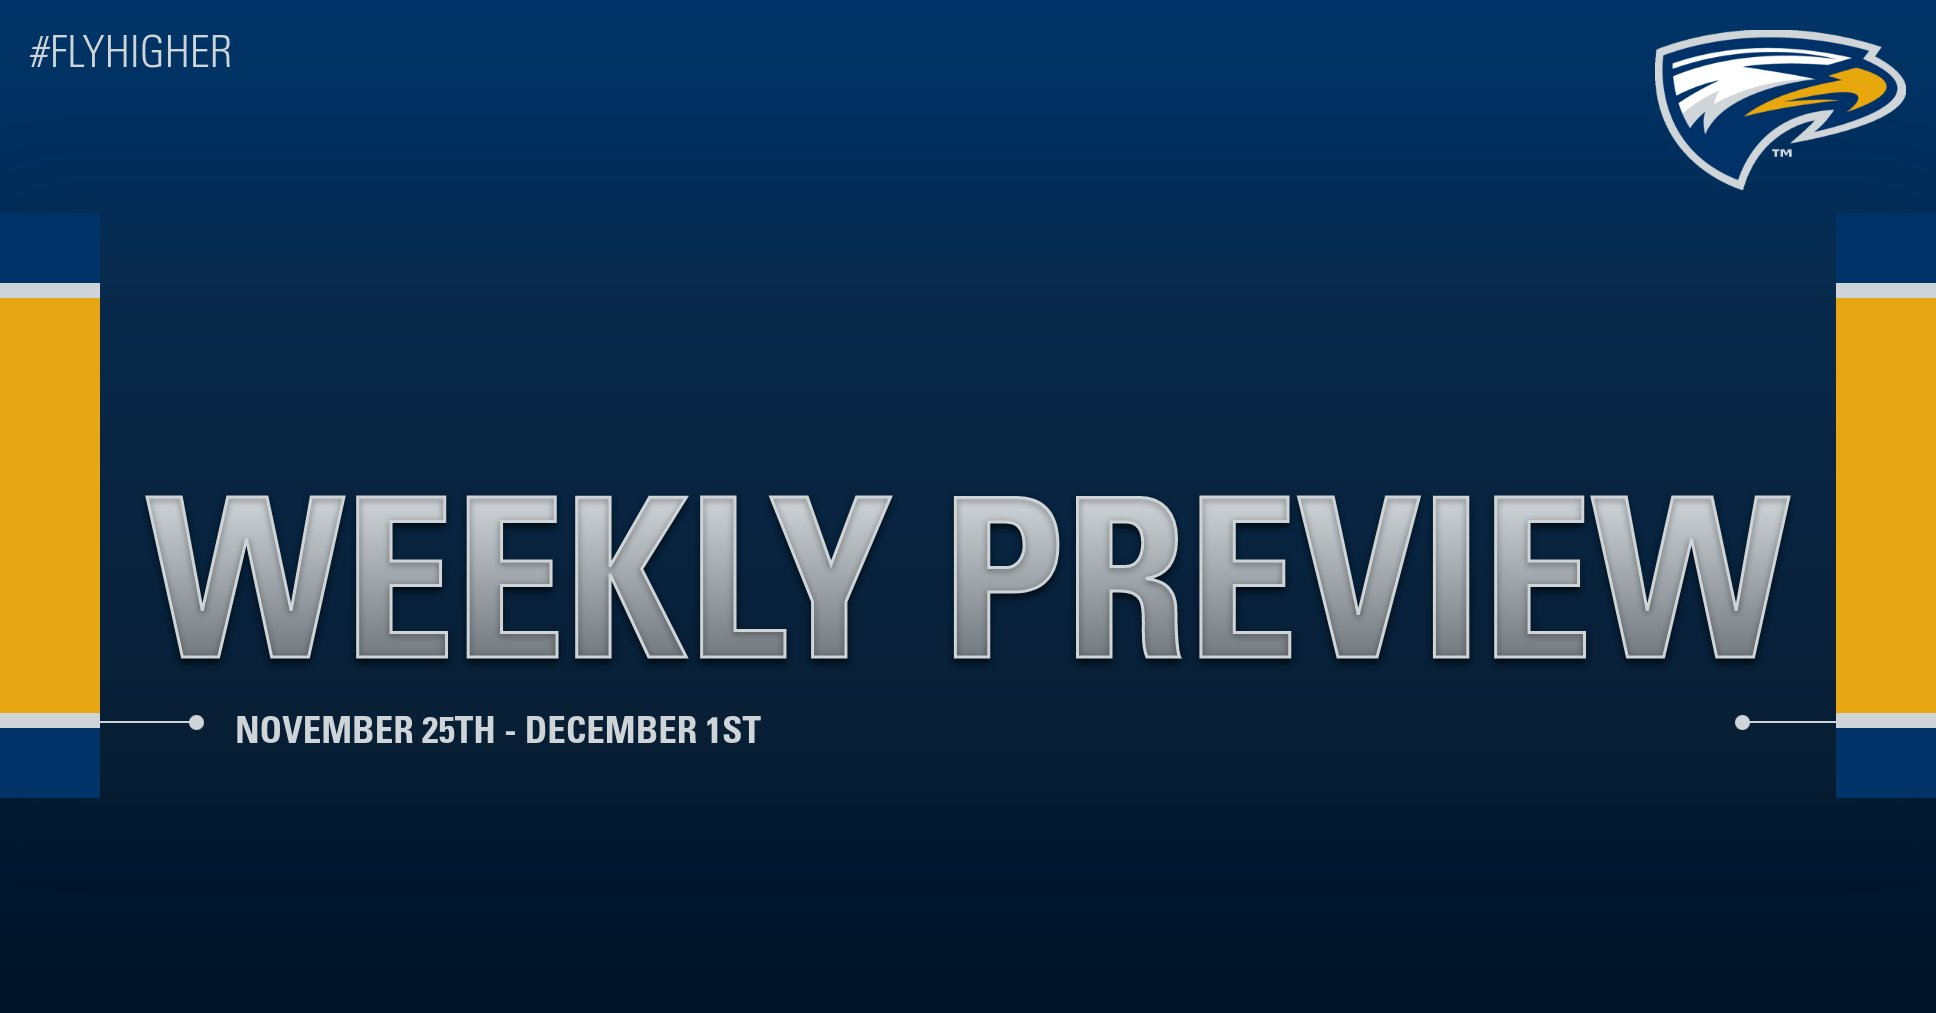 Emory Athletics Weekly Preview - November 25th - December 1st